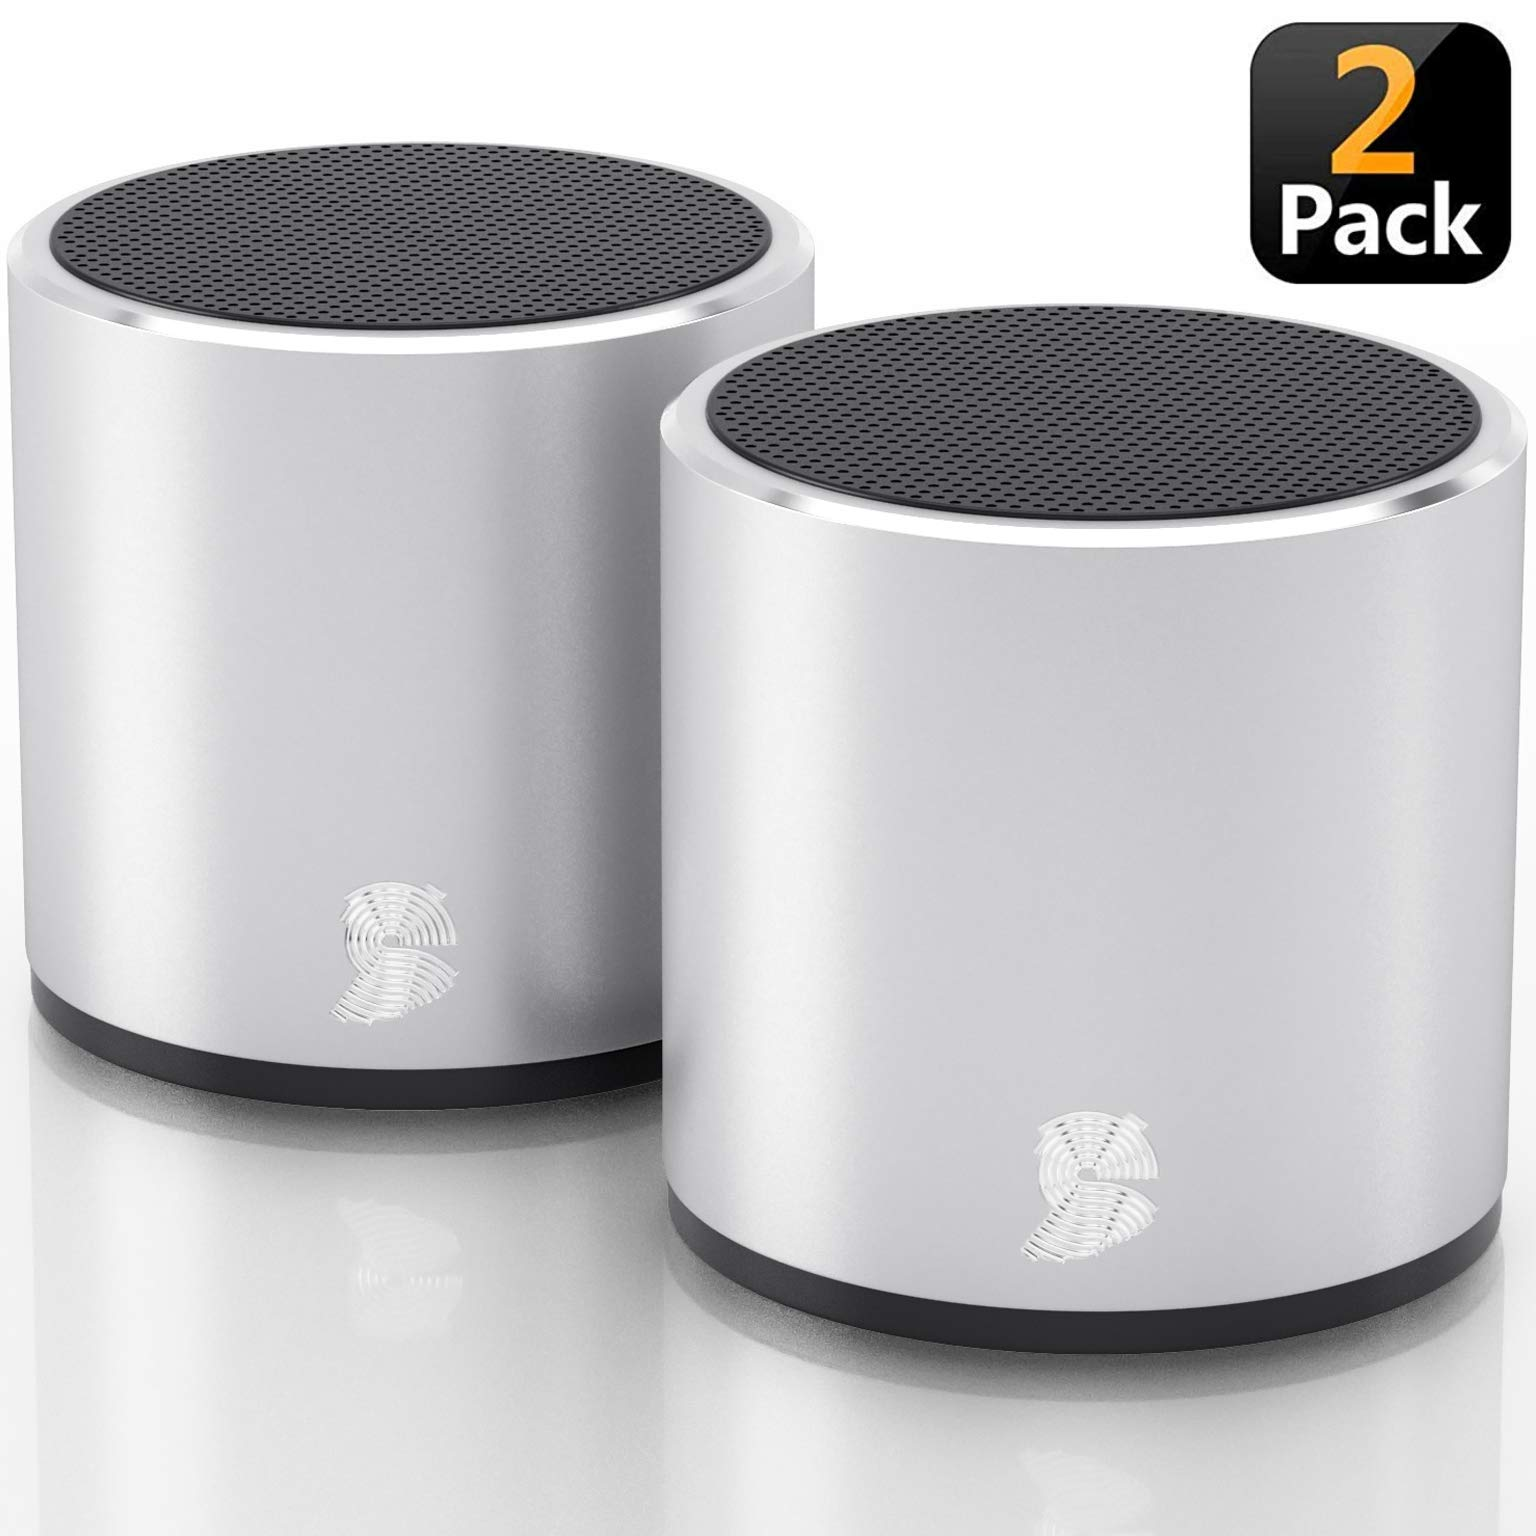 Amazon Com 2 Pack Headsound H2 True Wireless Bluetooth Speakers Latest Powerful Dual Twin Portable Mini Speaker Set W Surround Hd Sound Instant Pairing With Built In Mic For Handsfree Calls For Home Silver